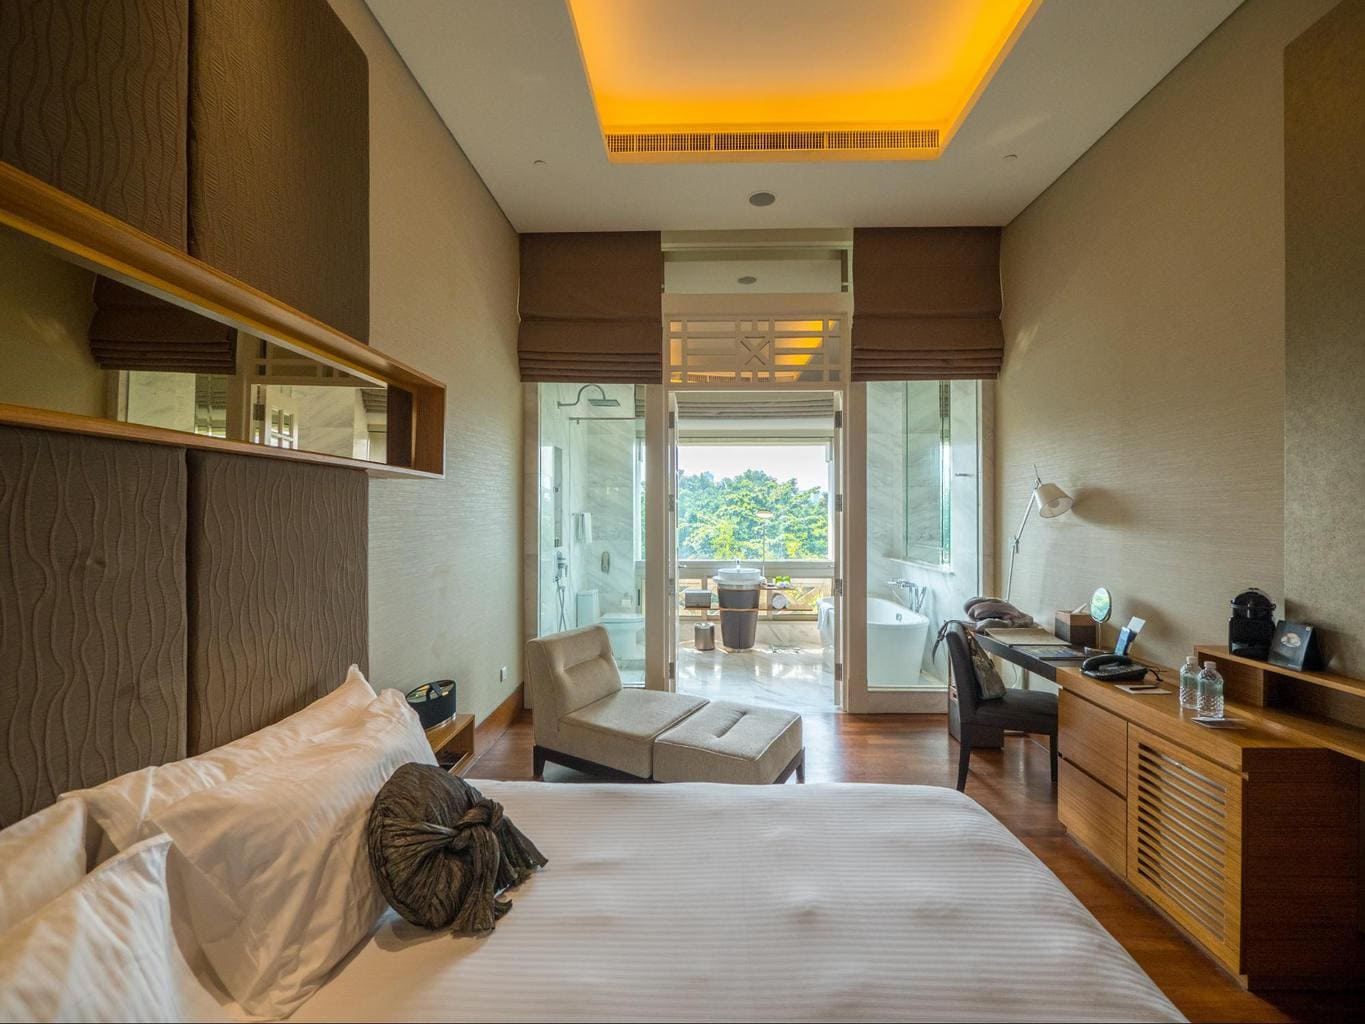 The deluxe room at Hotel Fort Canning view